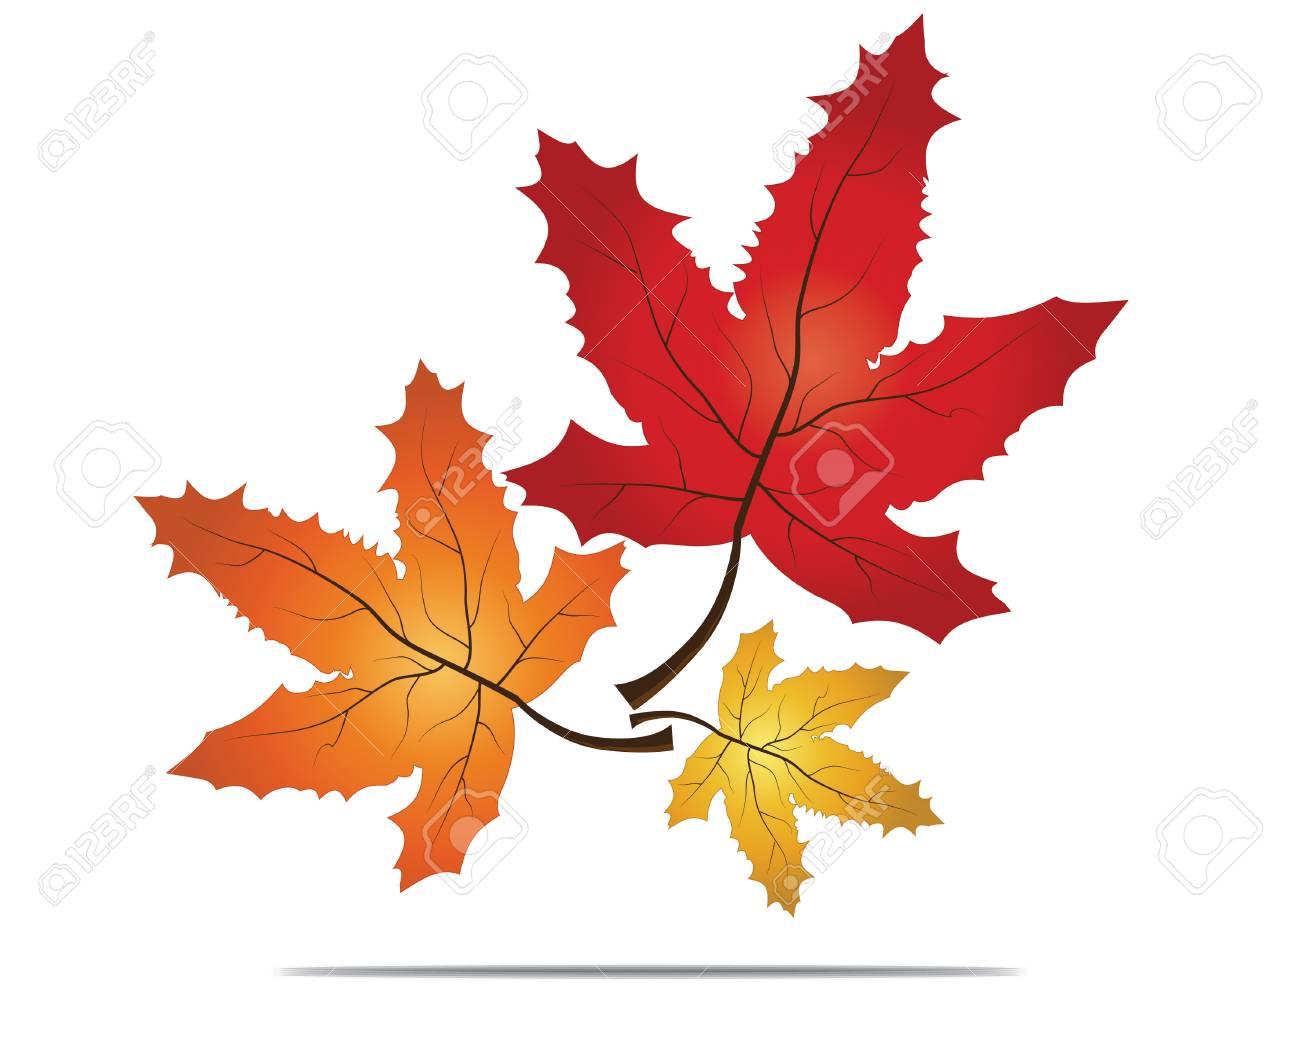 Red Maple Leaf As An Autumn Symbol As A Seasonal Themed Concept Royalty Free Cliparts Vectors And Stock Illustration Image 25288518